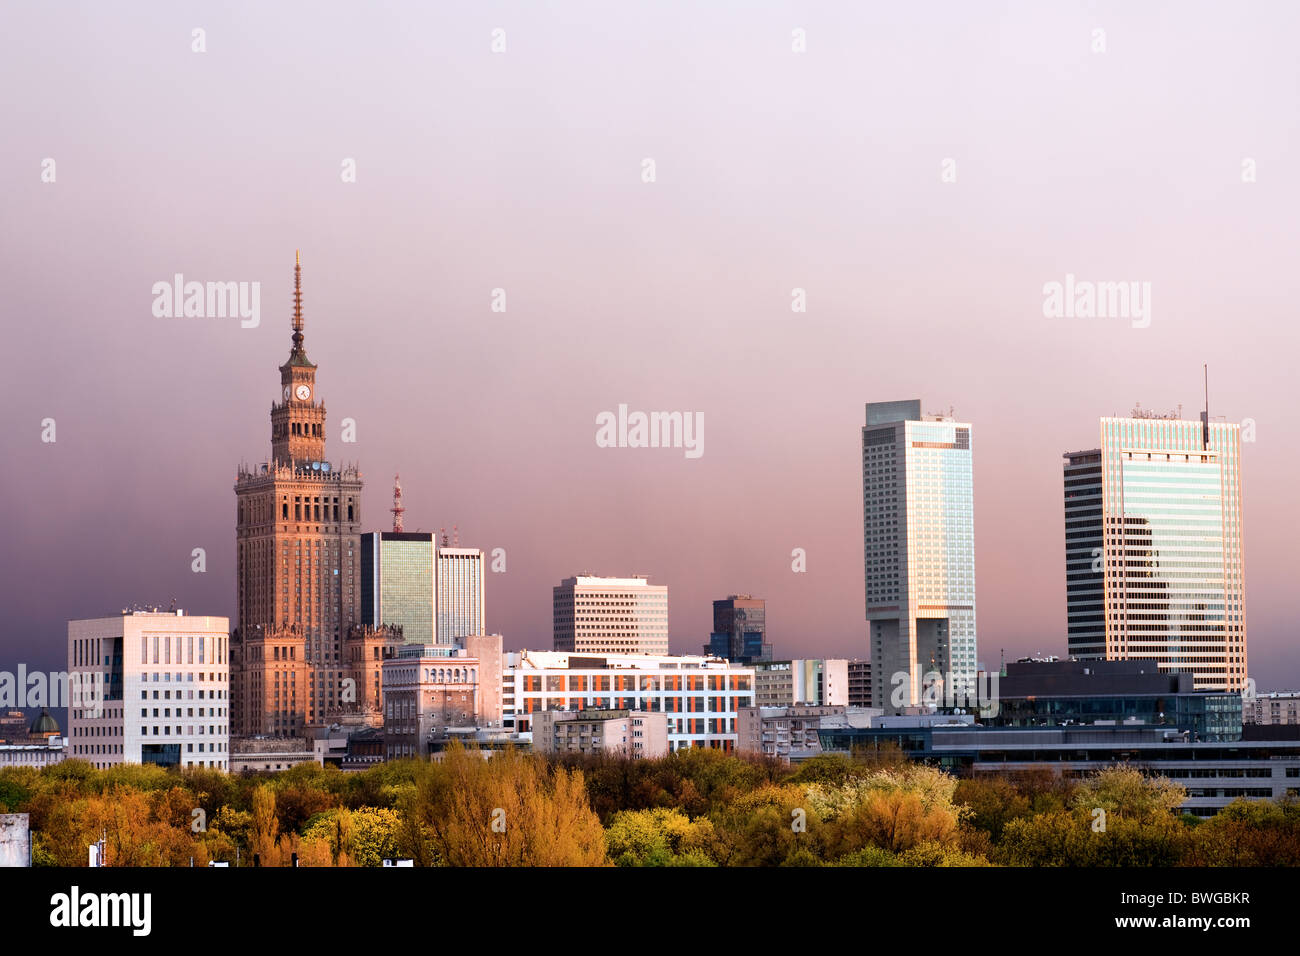 Warsaw, capital city of Poland cityscape, just before the sunset, featuring Palace of Culture and Science, Srodmiescie - Stock Image